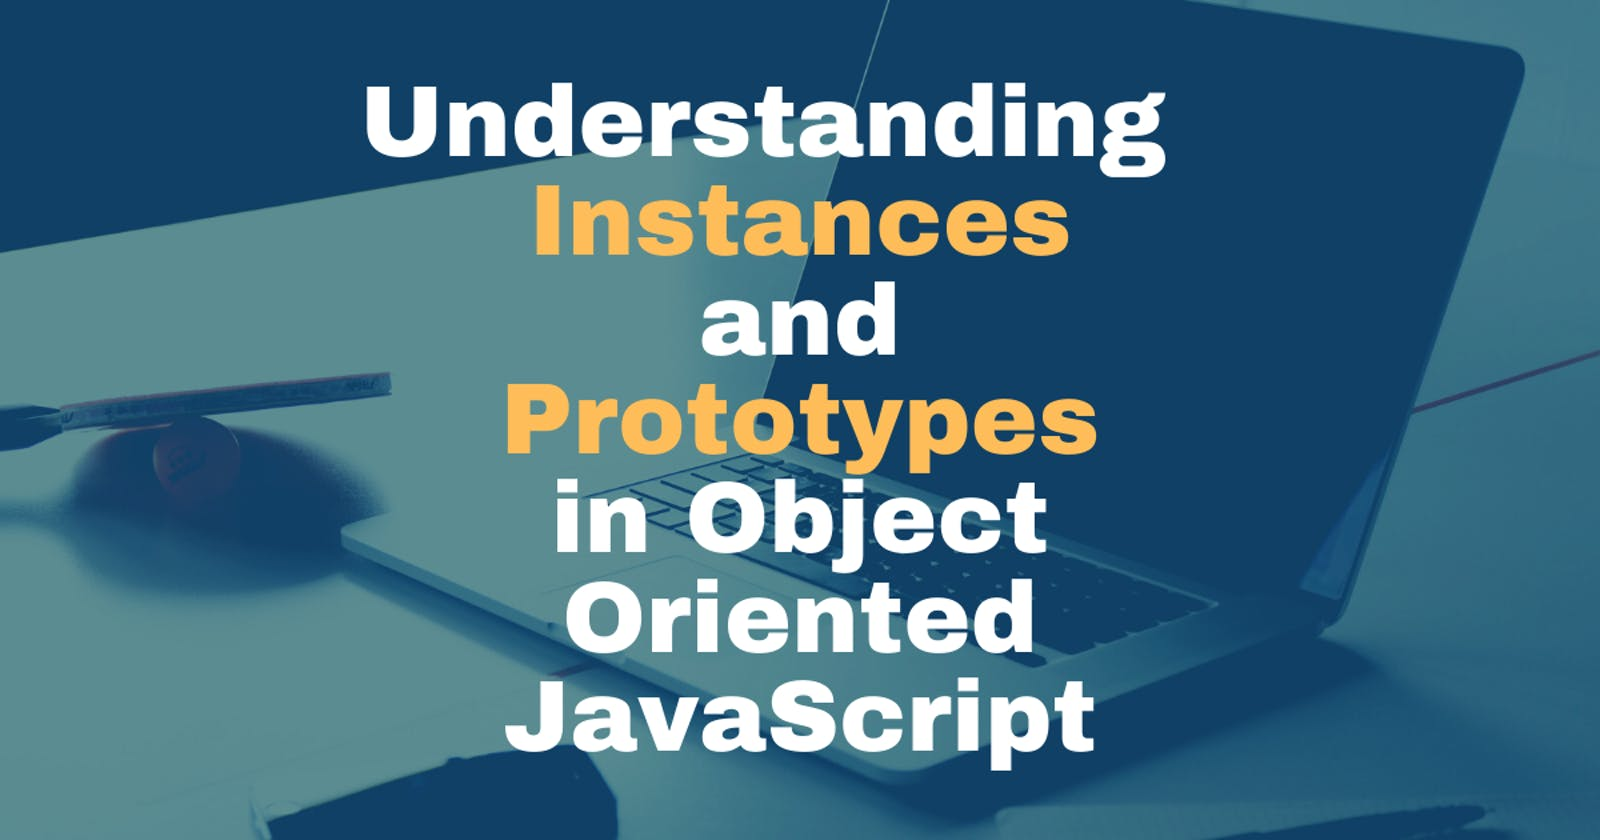 Understanding Instances and Prototypes in Object-Oriented JavaScript.